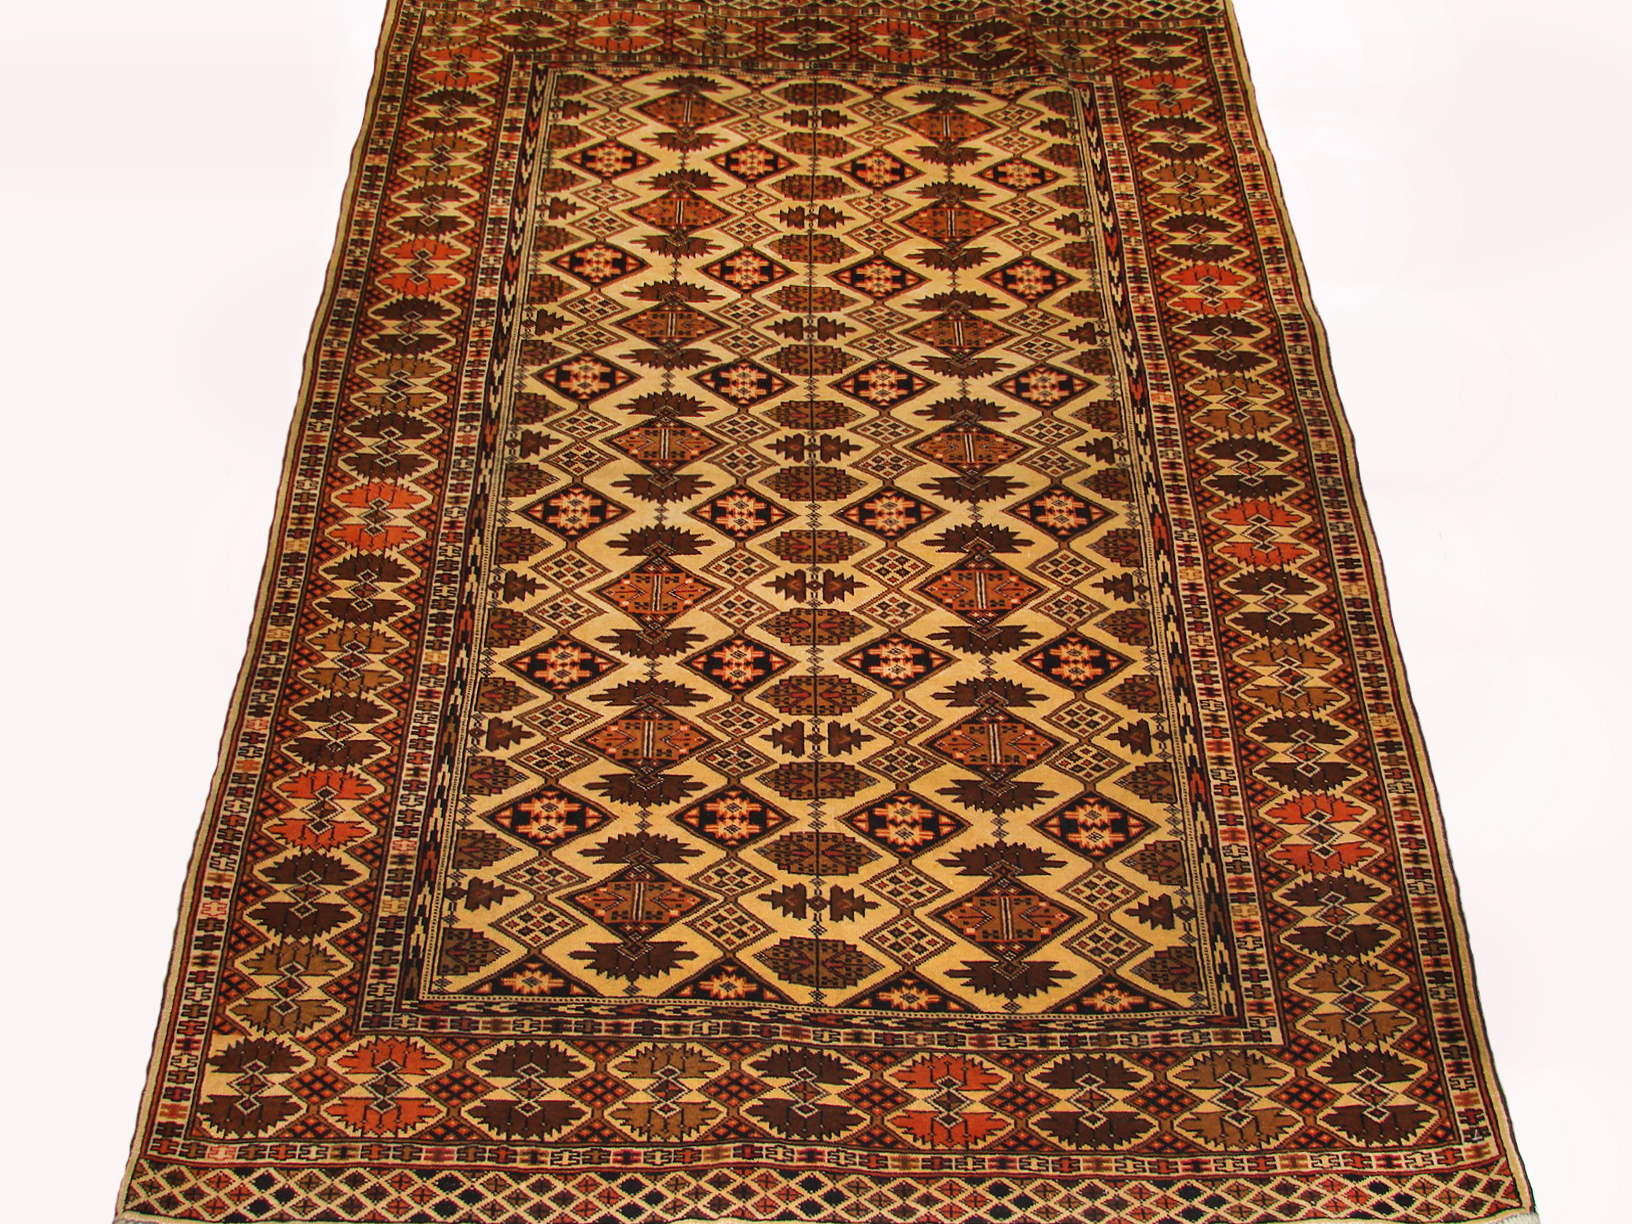 4x6 Bokhara Hand Knotted Wool Area Rug - MR19447